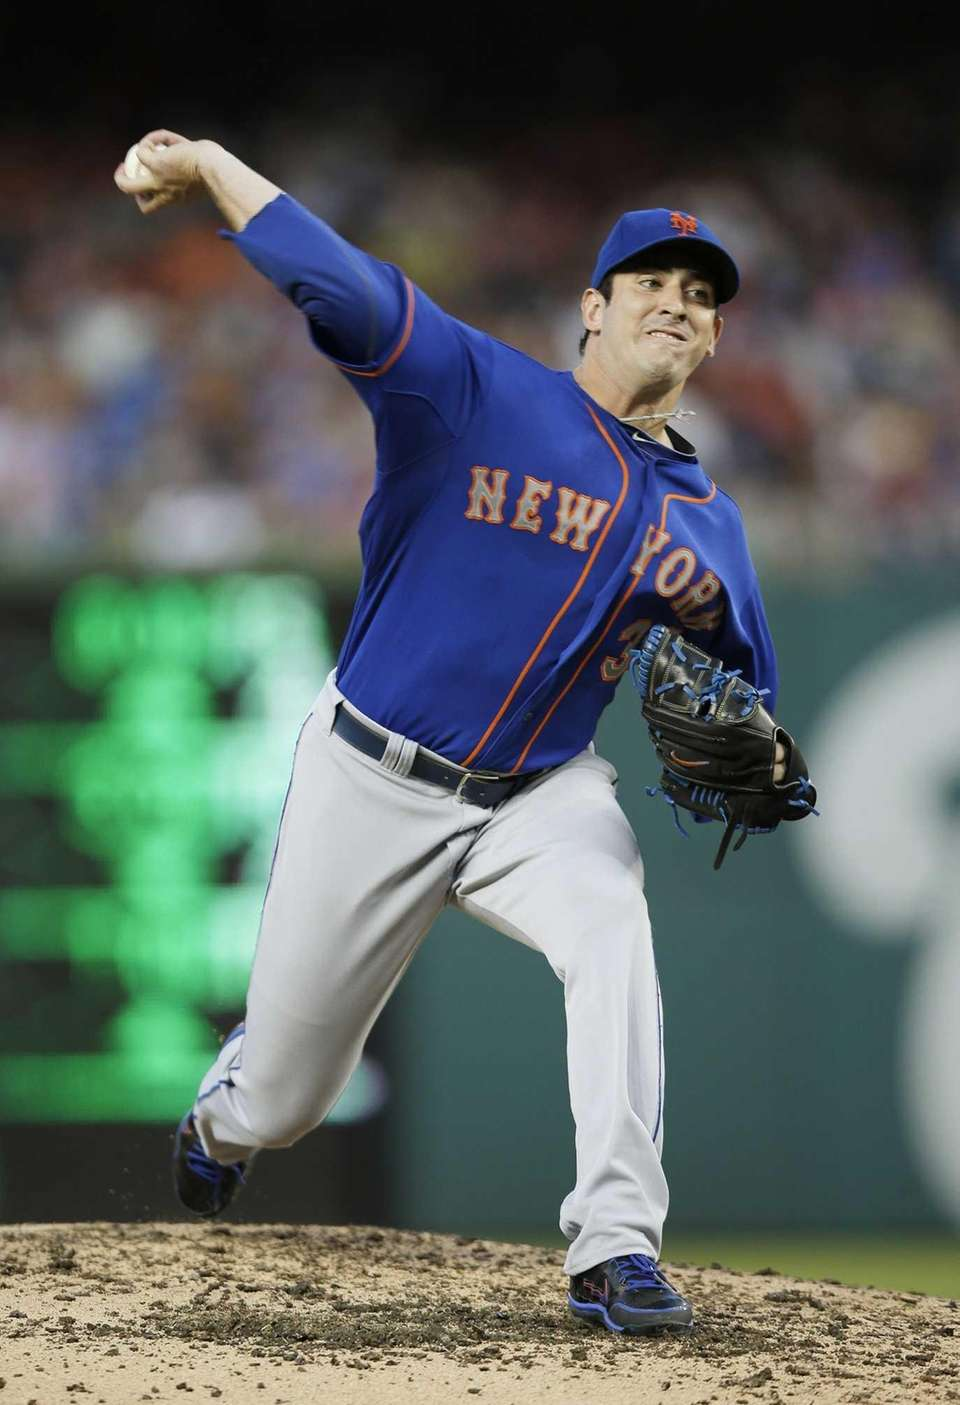 Mets starting pitcher Matt Harvey throws to a